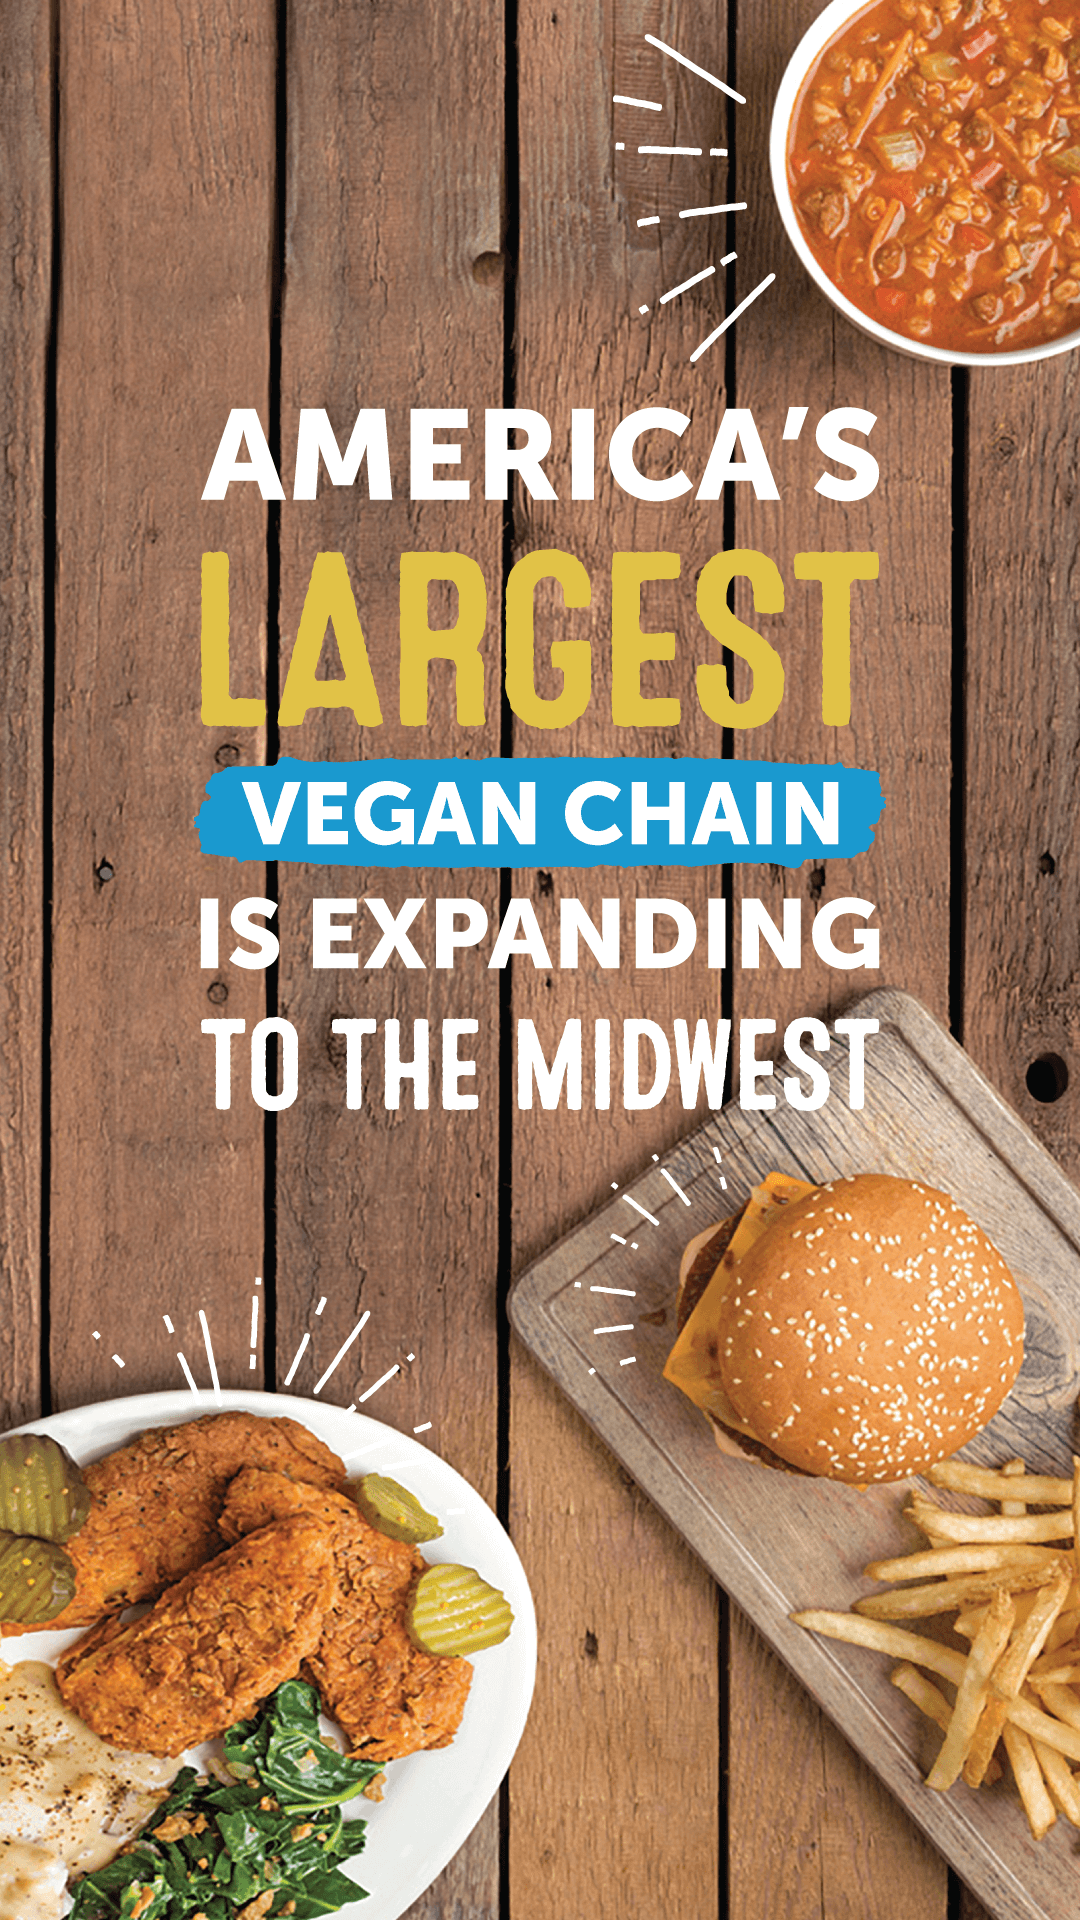 America's Largest Vegan Chain Is Expanding to the Midwest